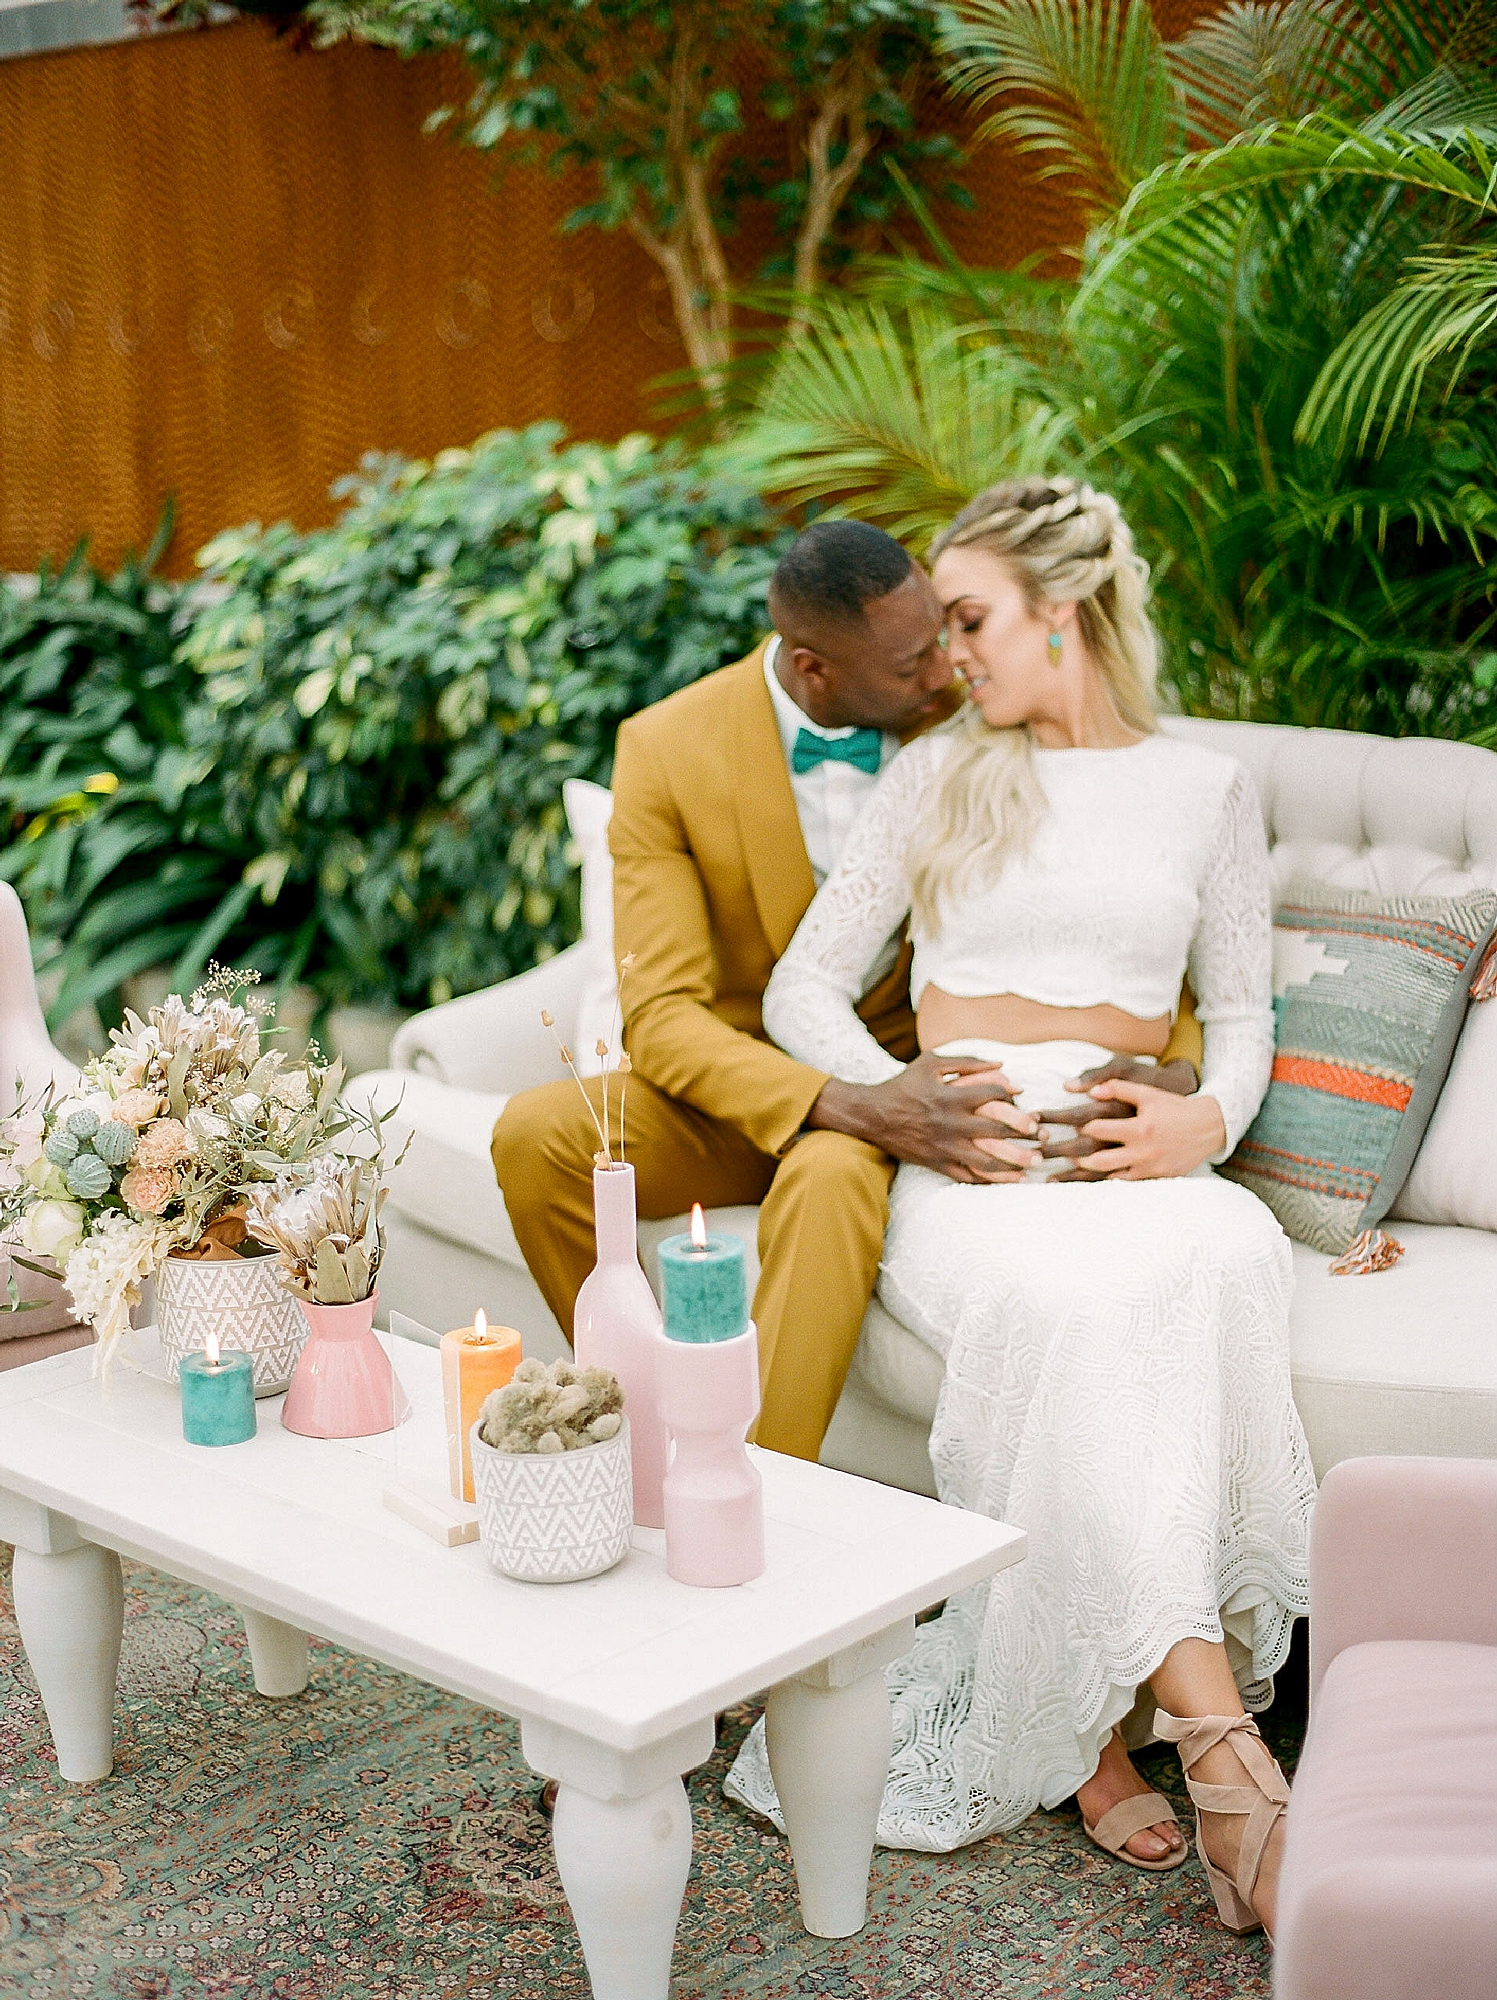 Colorful and Vibrant Wedding Photography at Fairmount Horticultural Center by Magdalena Studios 0042